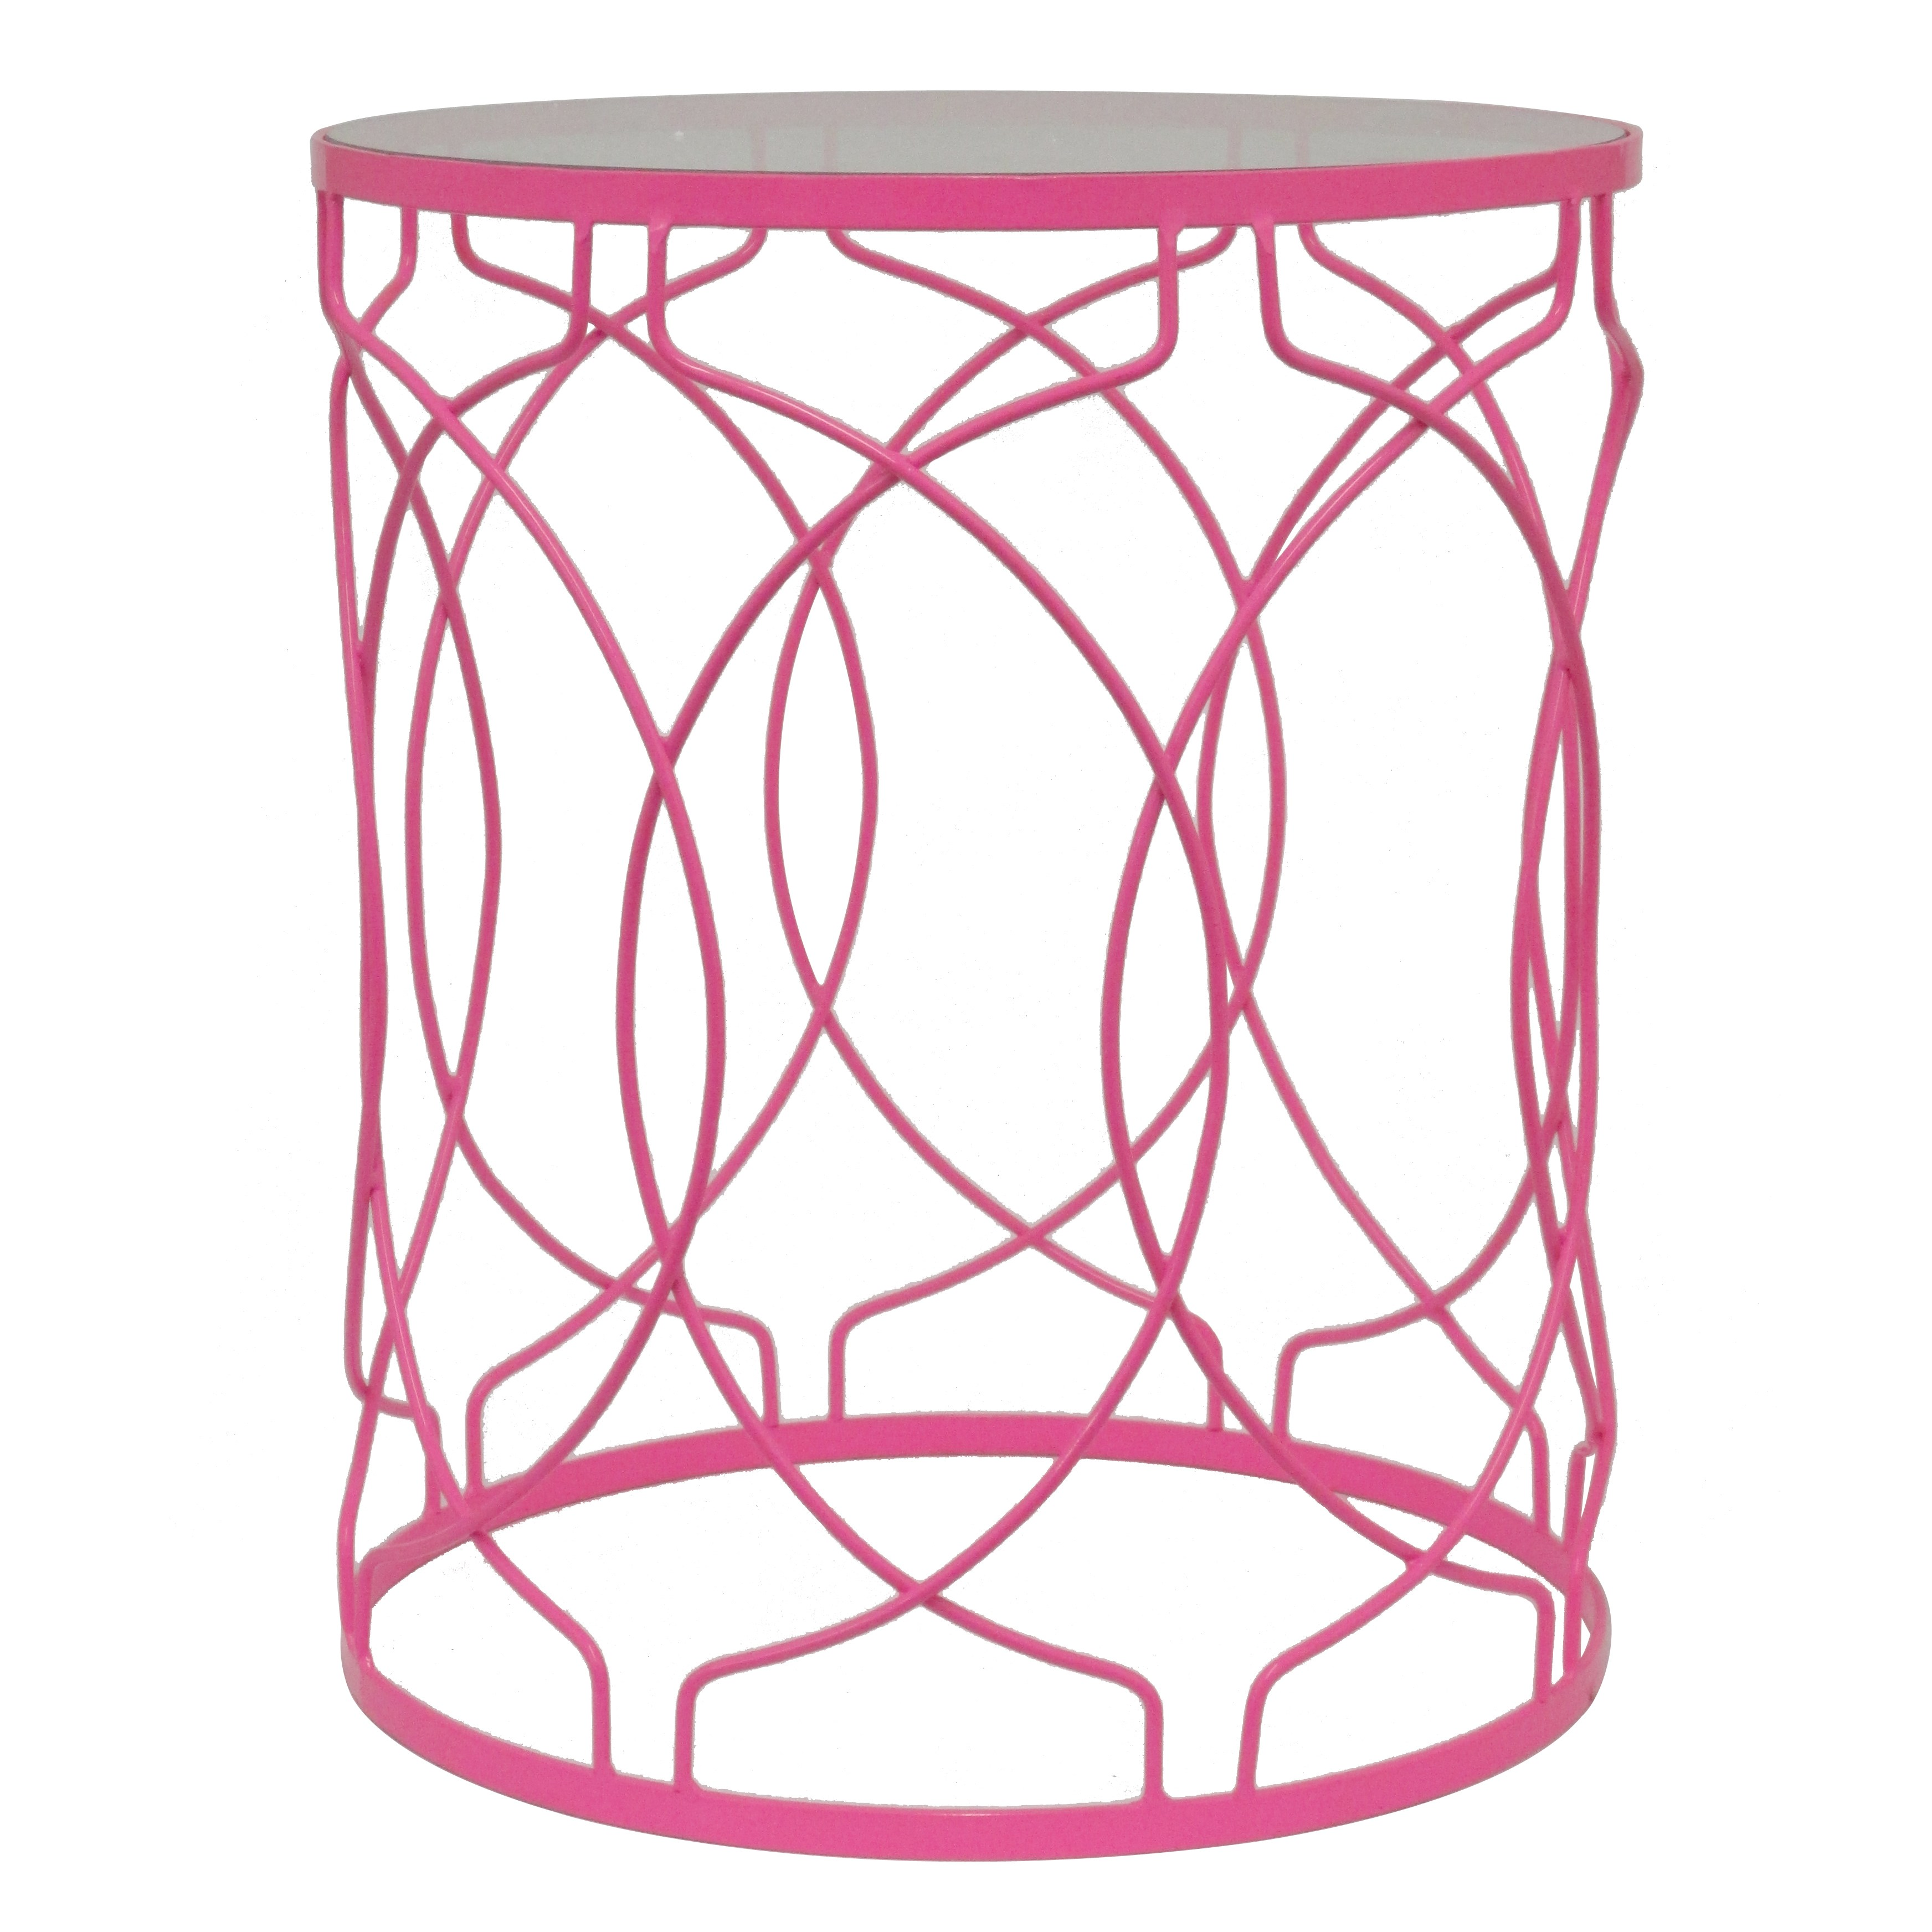 pink metal accent table free shipping today silver coffee bronze patio side moroccan drum mirrored occasional giant wall clock leadlight lamps teal white wicker blue lamp shade